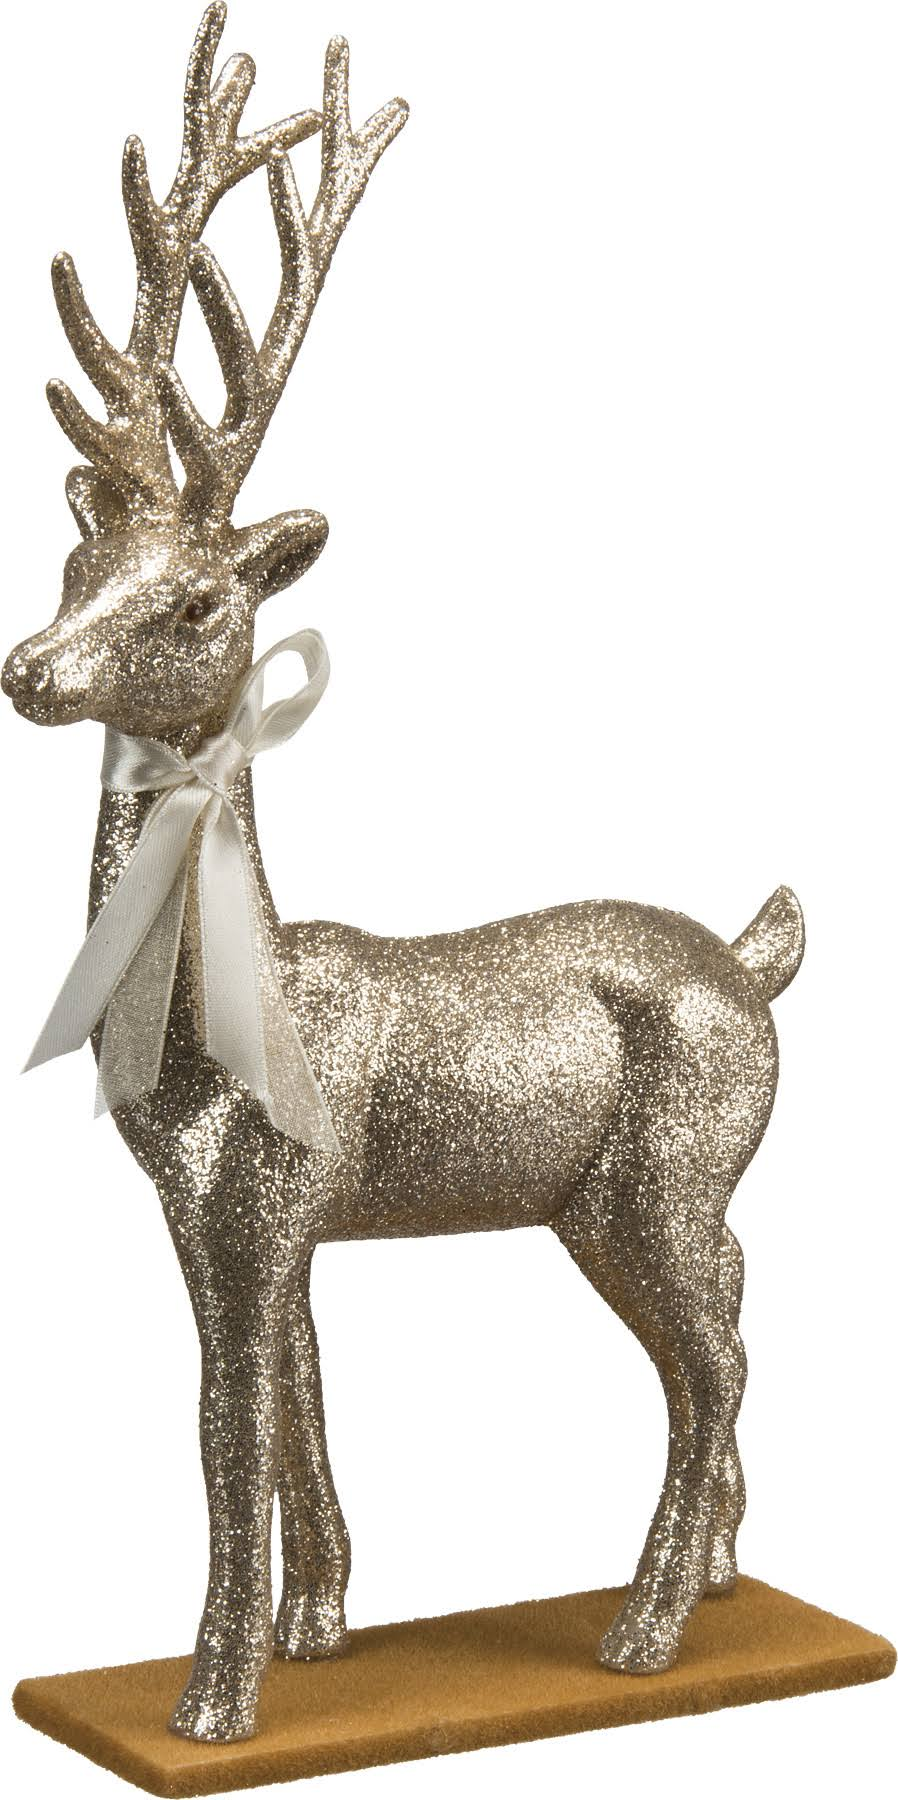 Primitives By Kathy Standing Deer Figure - Champagne Glitter